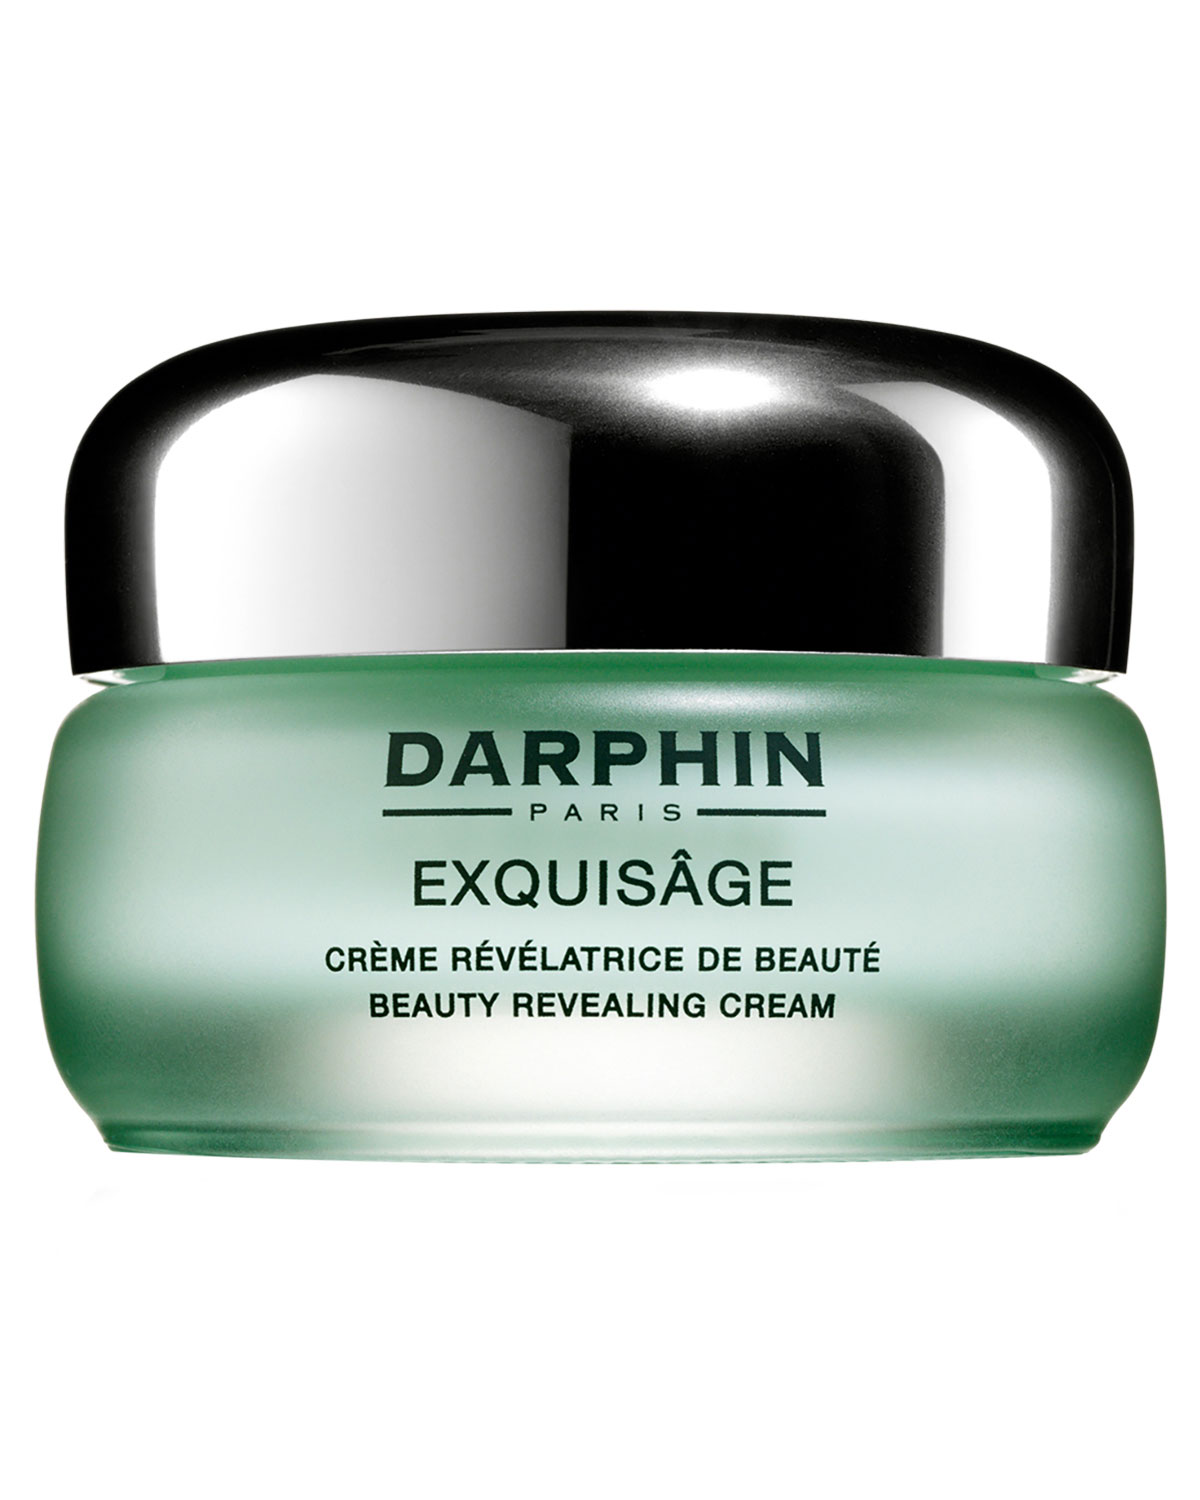 DARPHIN Exquisage Beauty Revealing Cream, 1.7 Oz./ 50 Ml